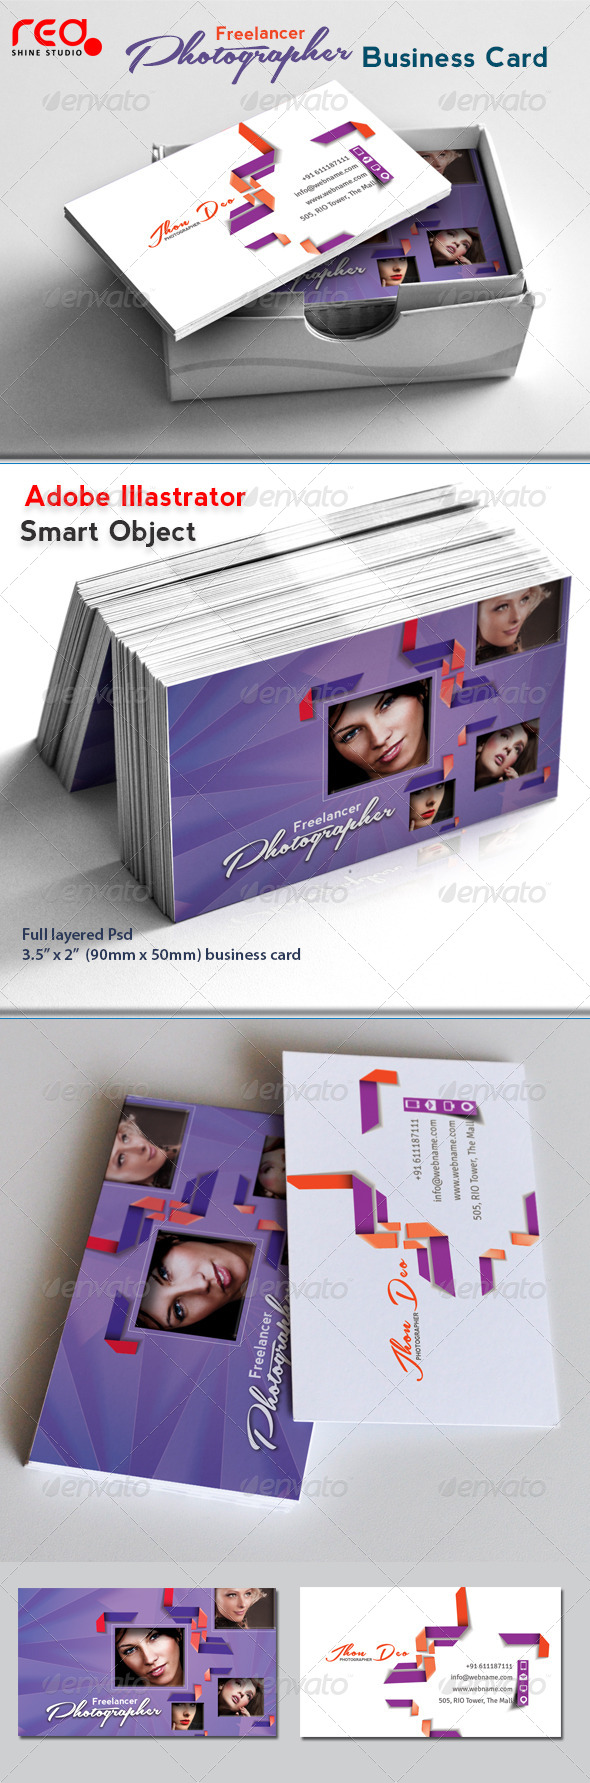 Freelance Photographer Business Card - 03 - Corporate Business Cards